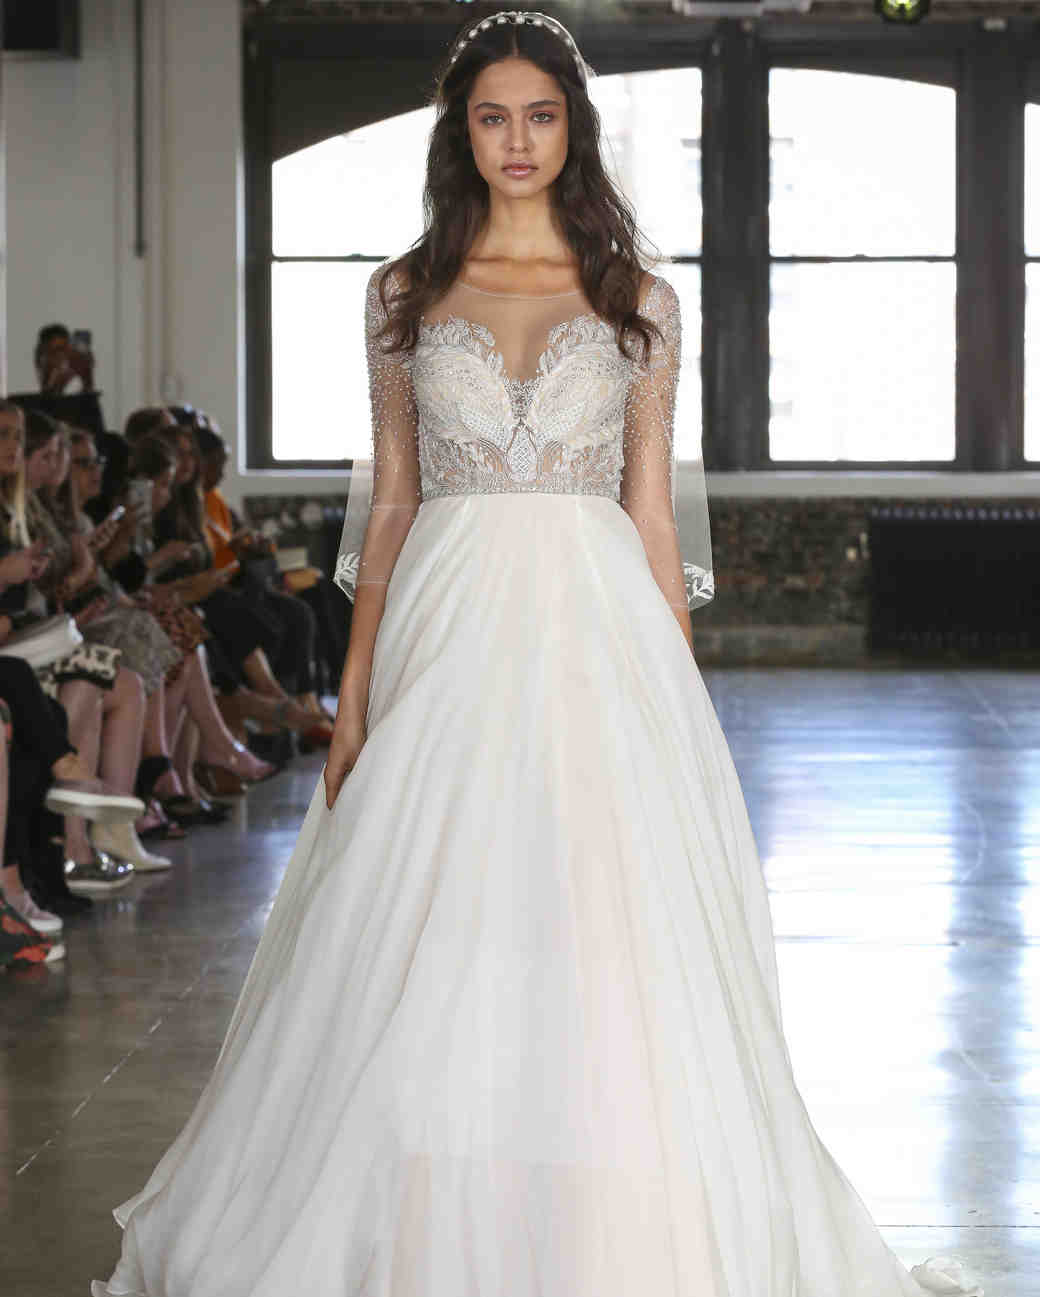 Watters illusion high neckline wedding dress with illusion three-quarter length sleeves fall 2019